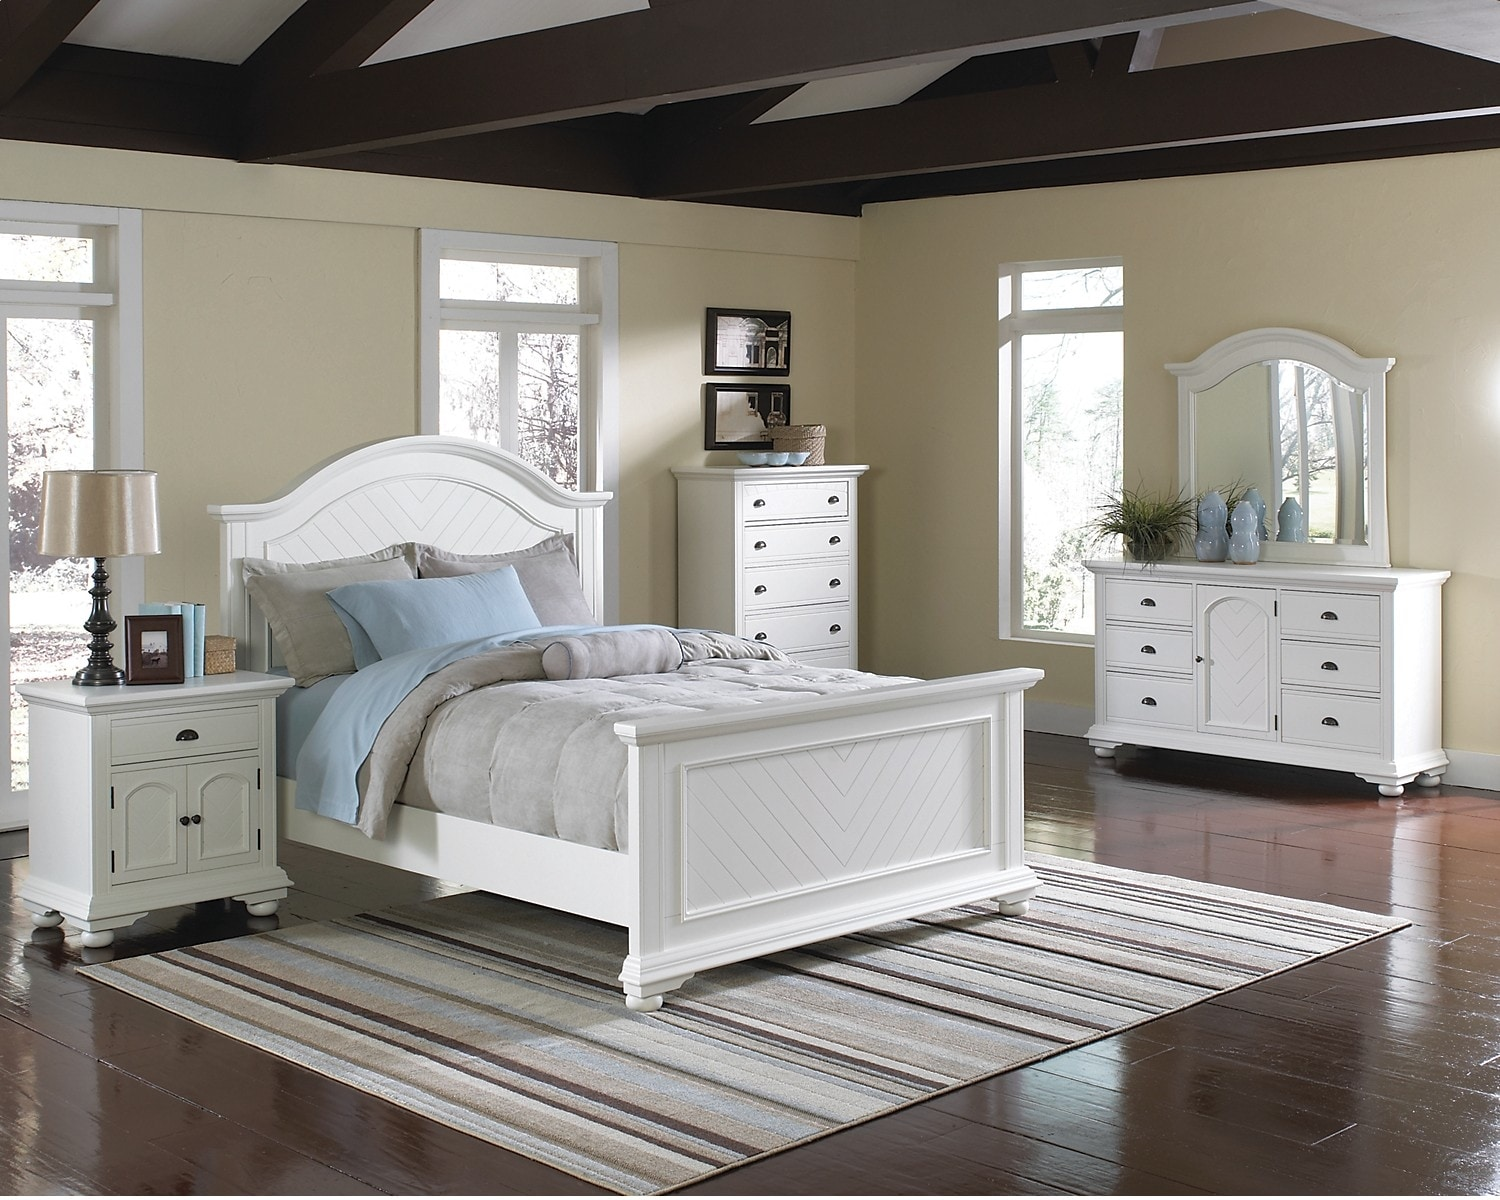 Bedroom Furniture - Casey Off White 7-Piece King Bedroom Package